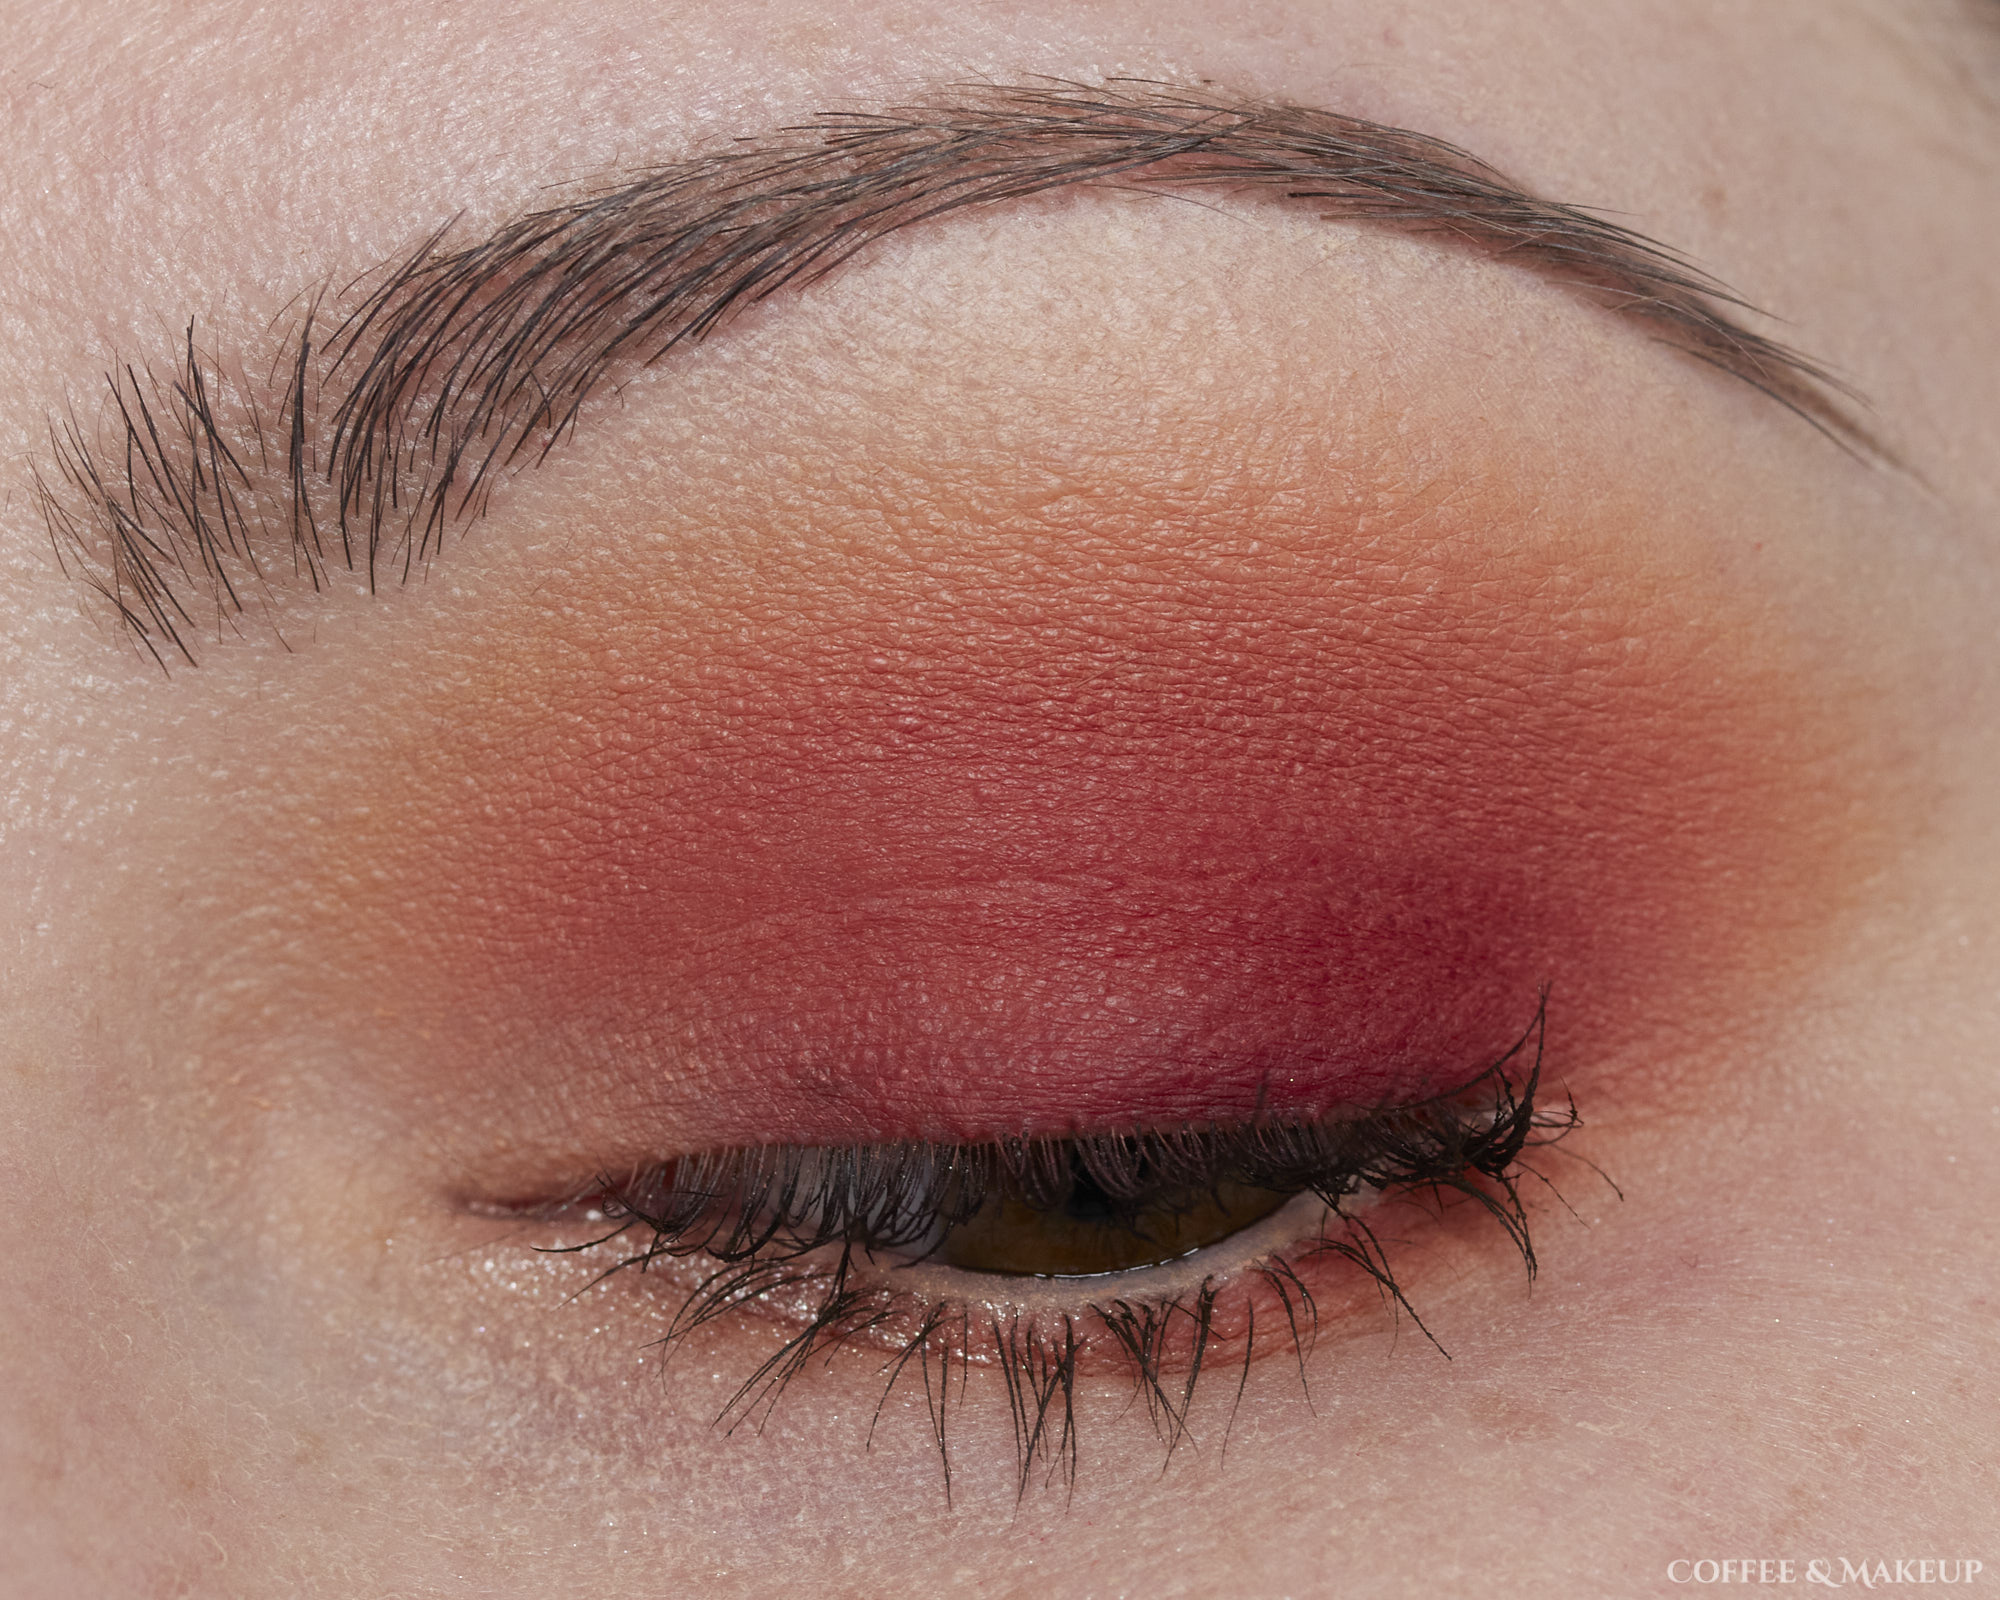 Makeup Geek Eyeshadow Look #3